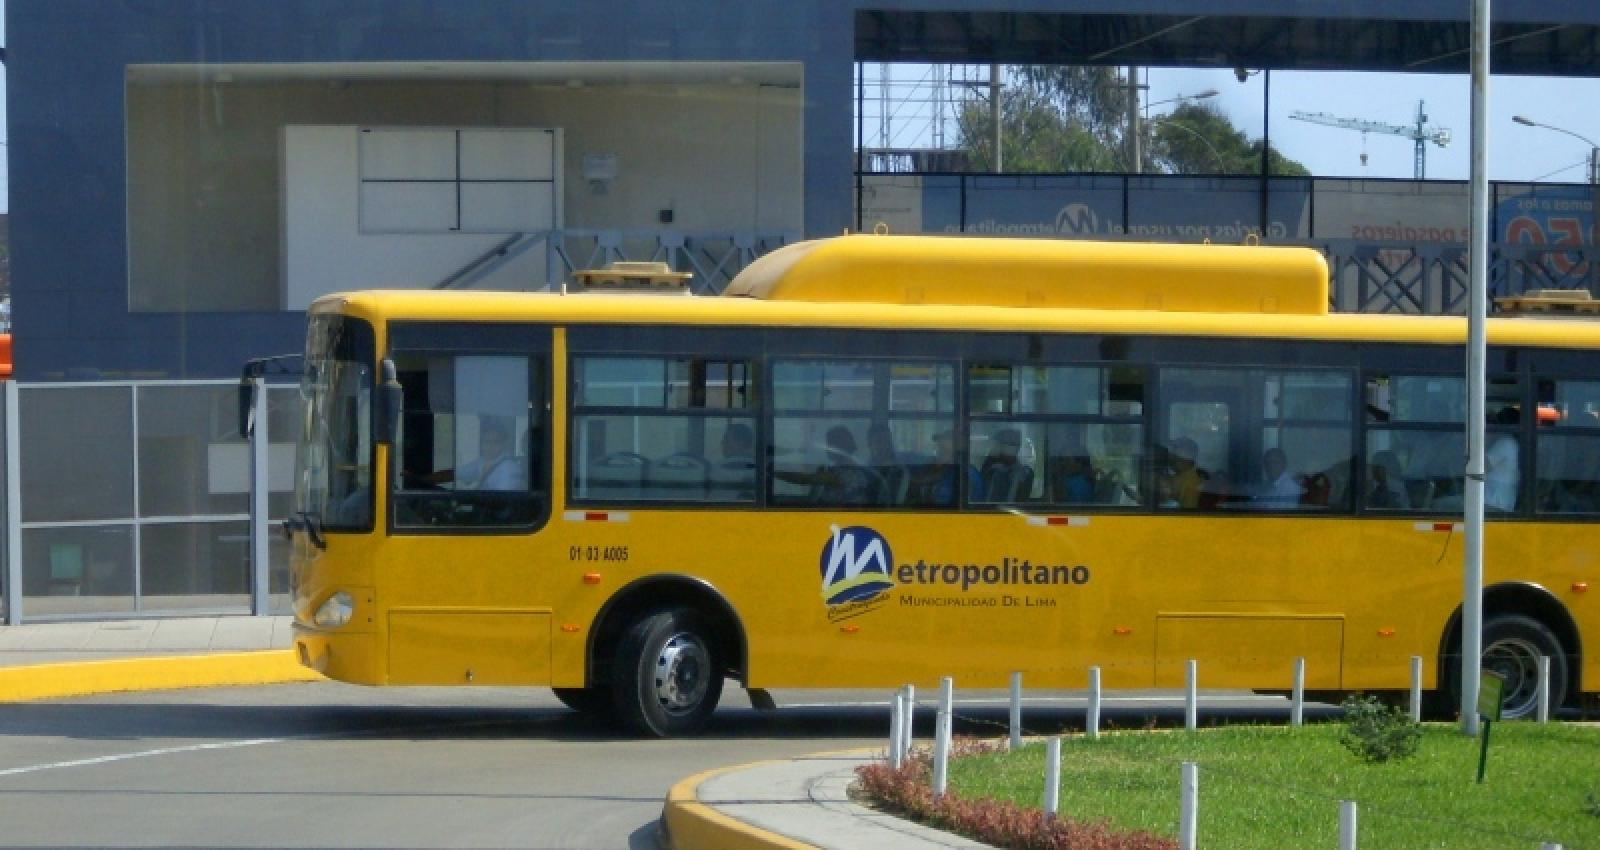 What the Lima Metropolitano Transport Project can teach us about